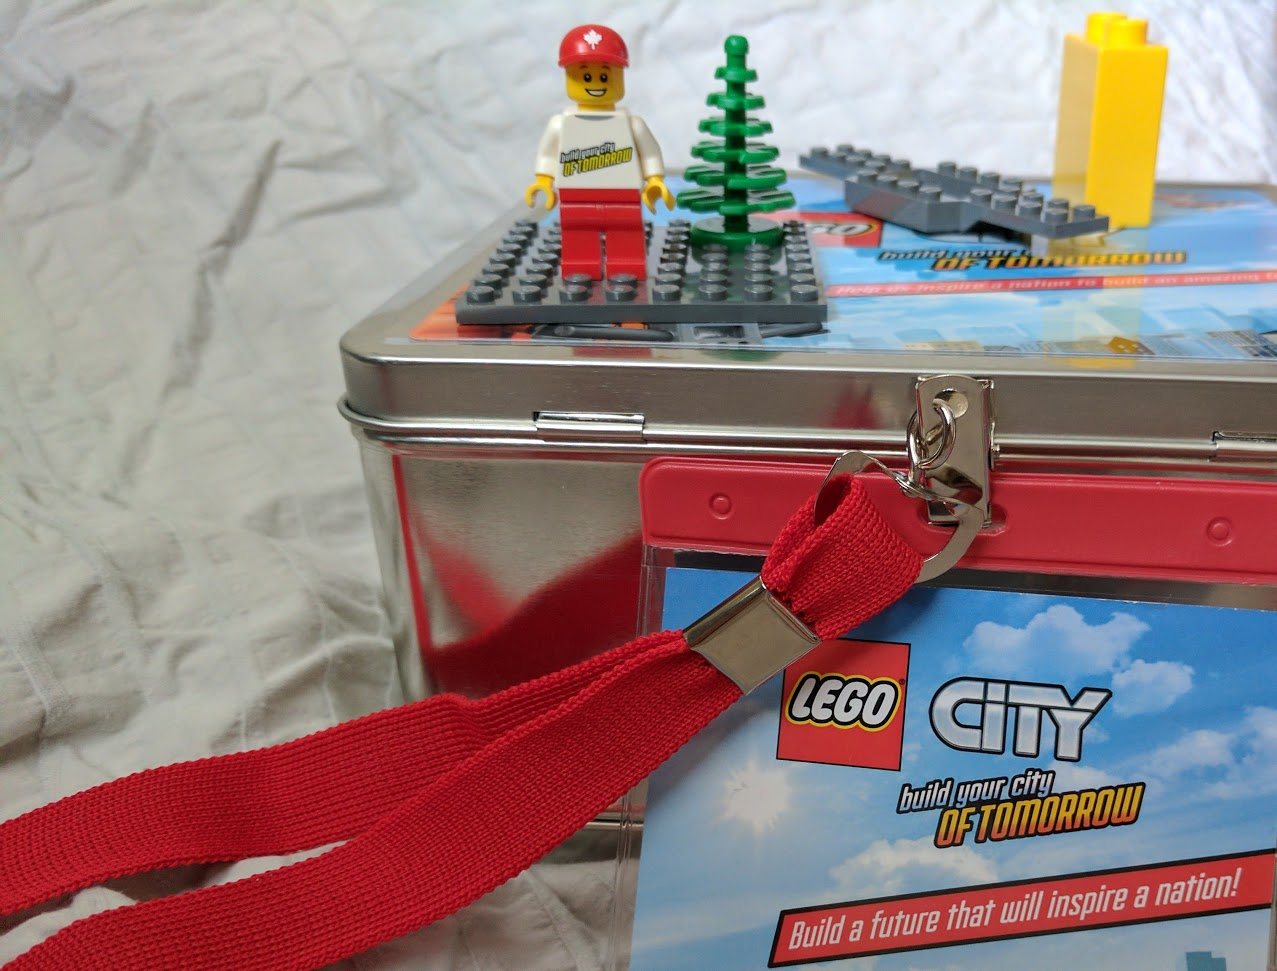 LEGO Build Your City of the Future